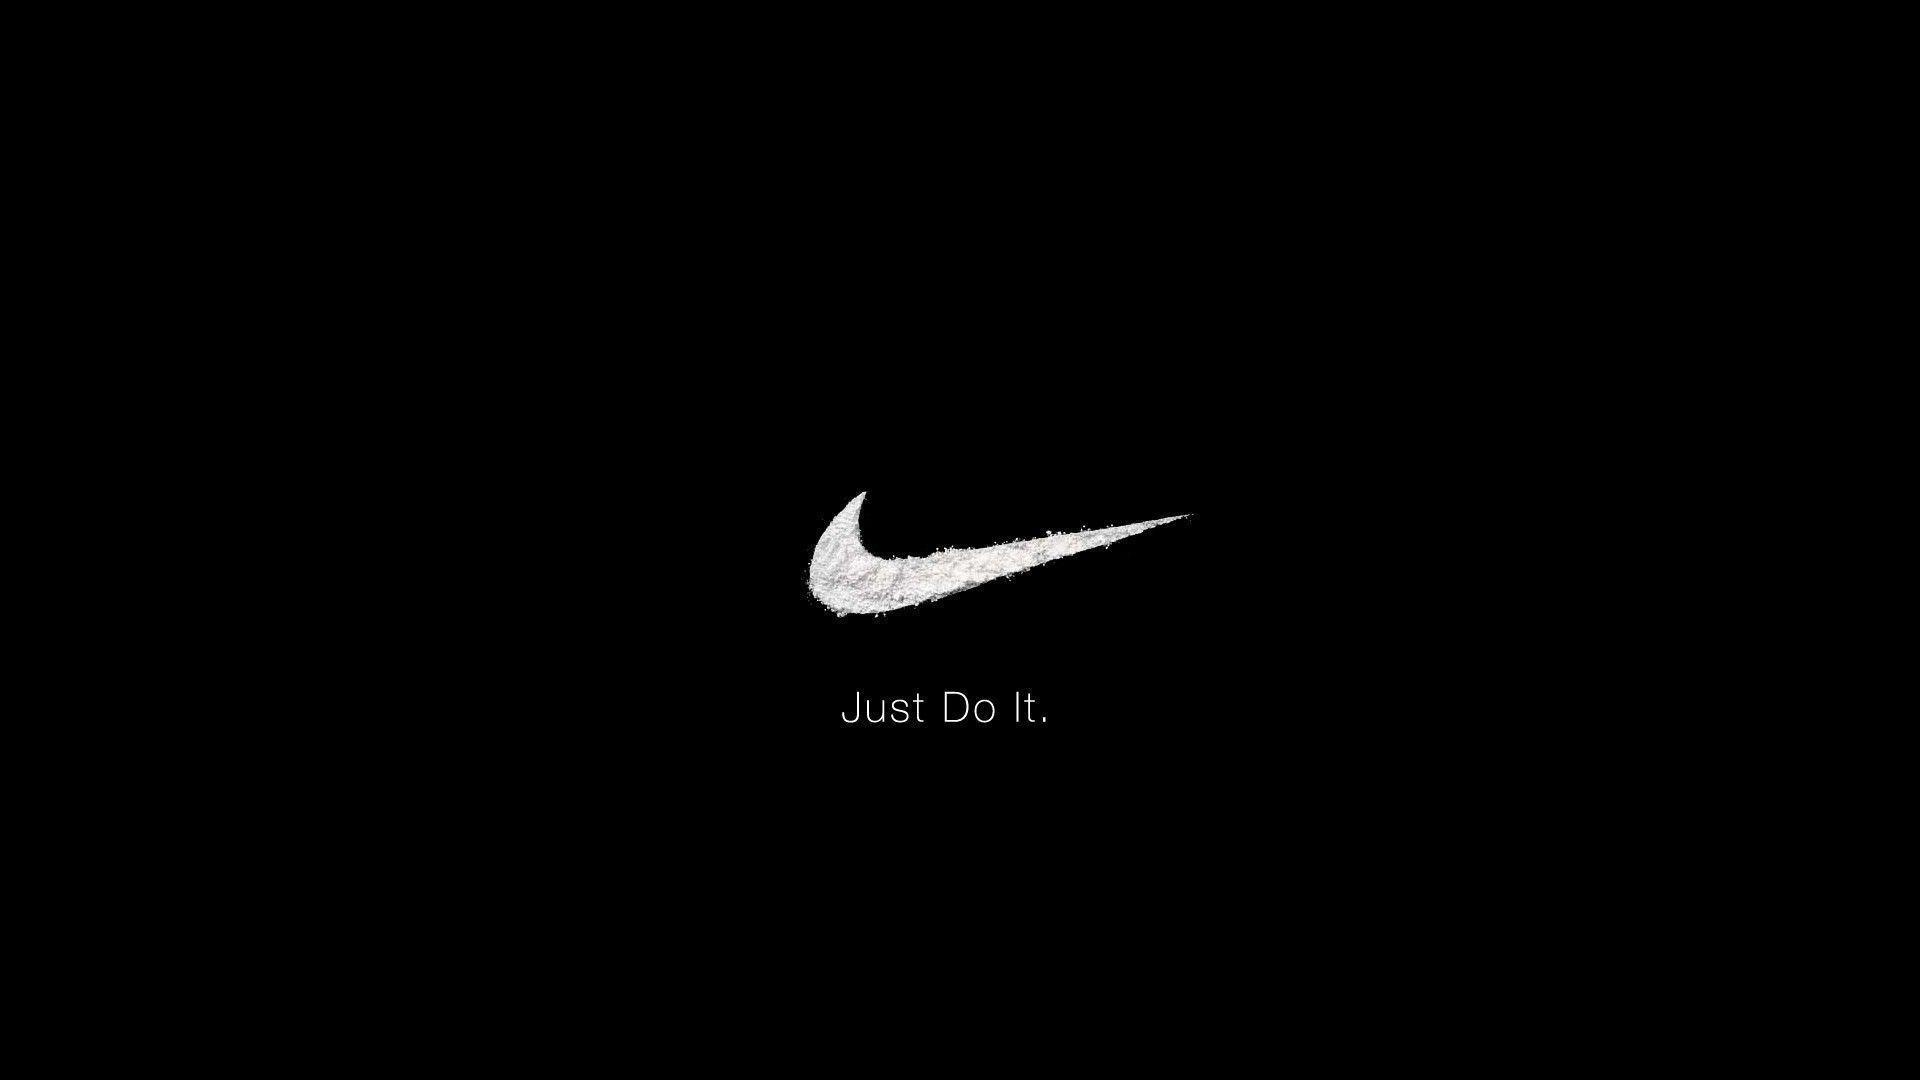 Hd wallpaper nike - Download Nike Logo Wallpaper Hd Logo Logotip Hd Wallpapers